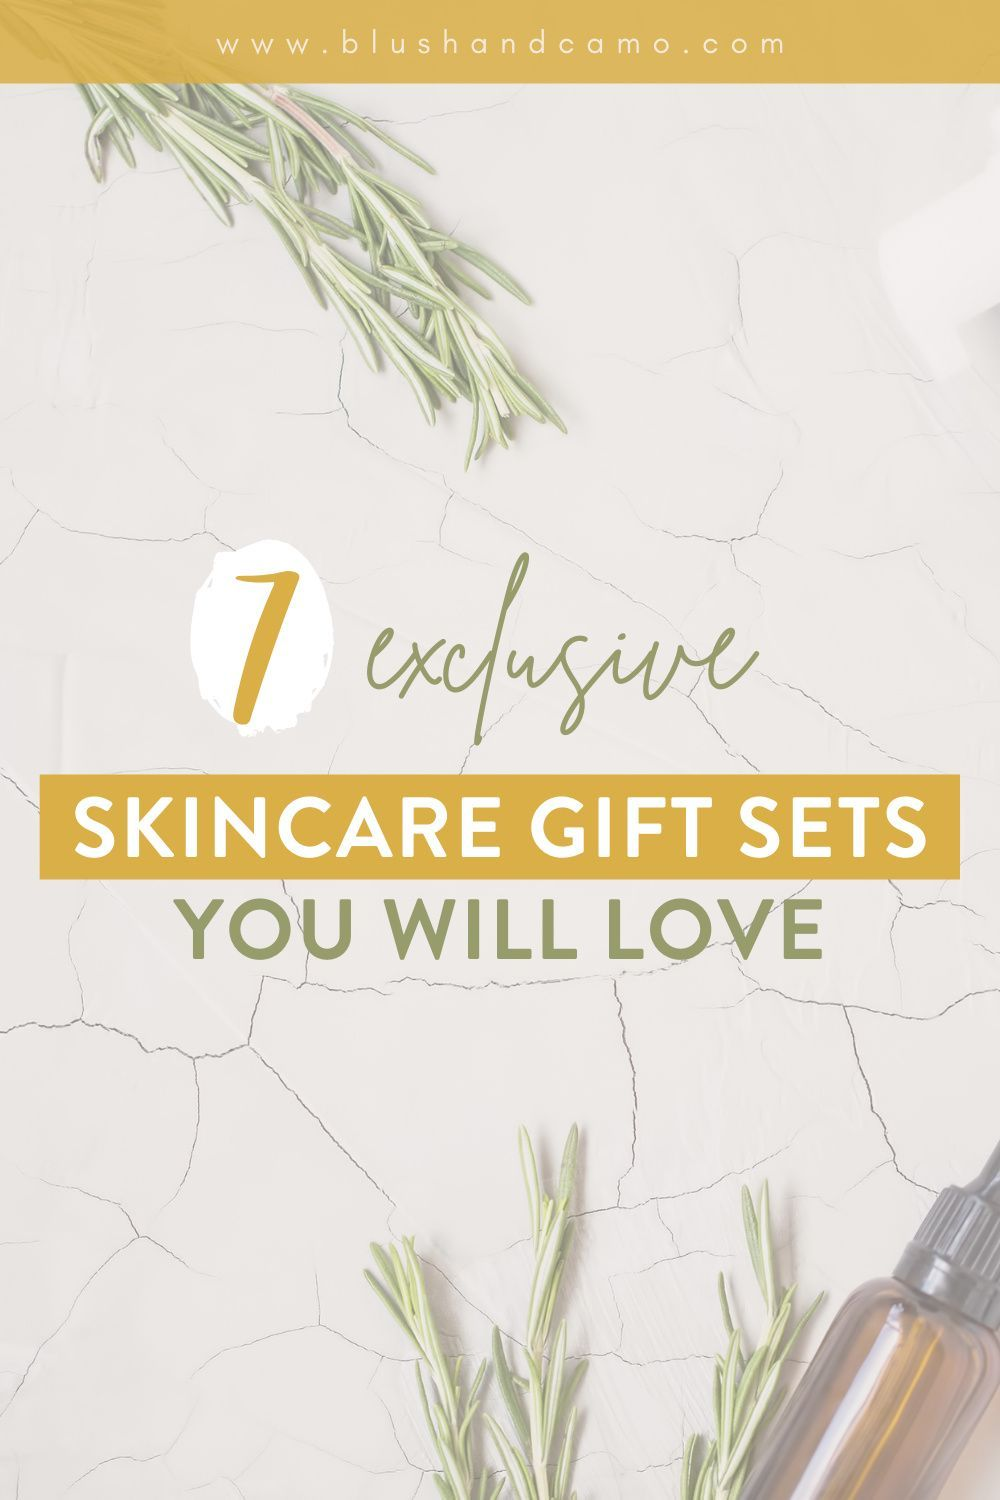 Is-7 2021 Christmas Camo 7 Exclusive Skincare Gift Sets You Ll Love Blush Camo In 2021 Skin Care Gifts Skincare Gift Set Skin Care